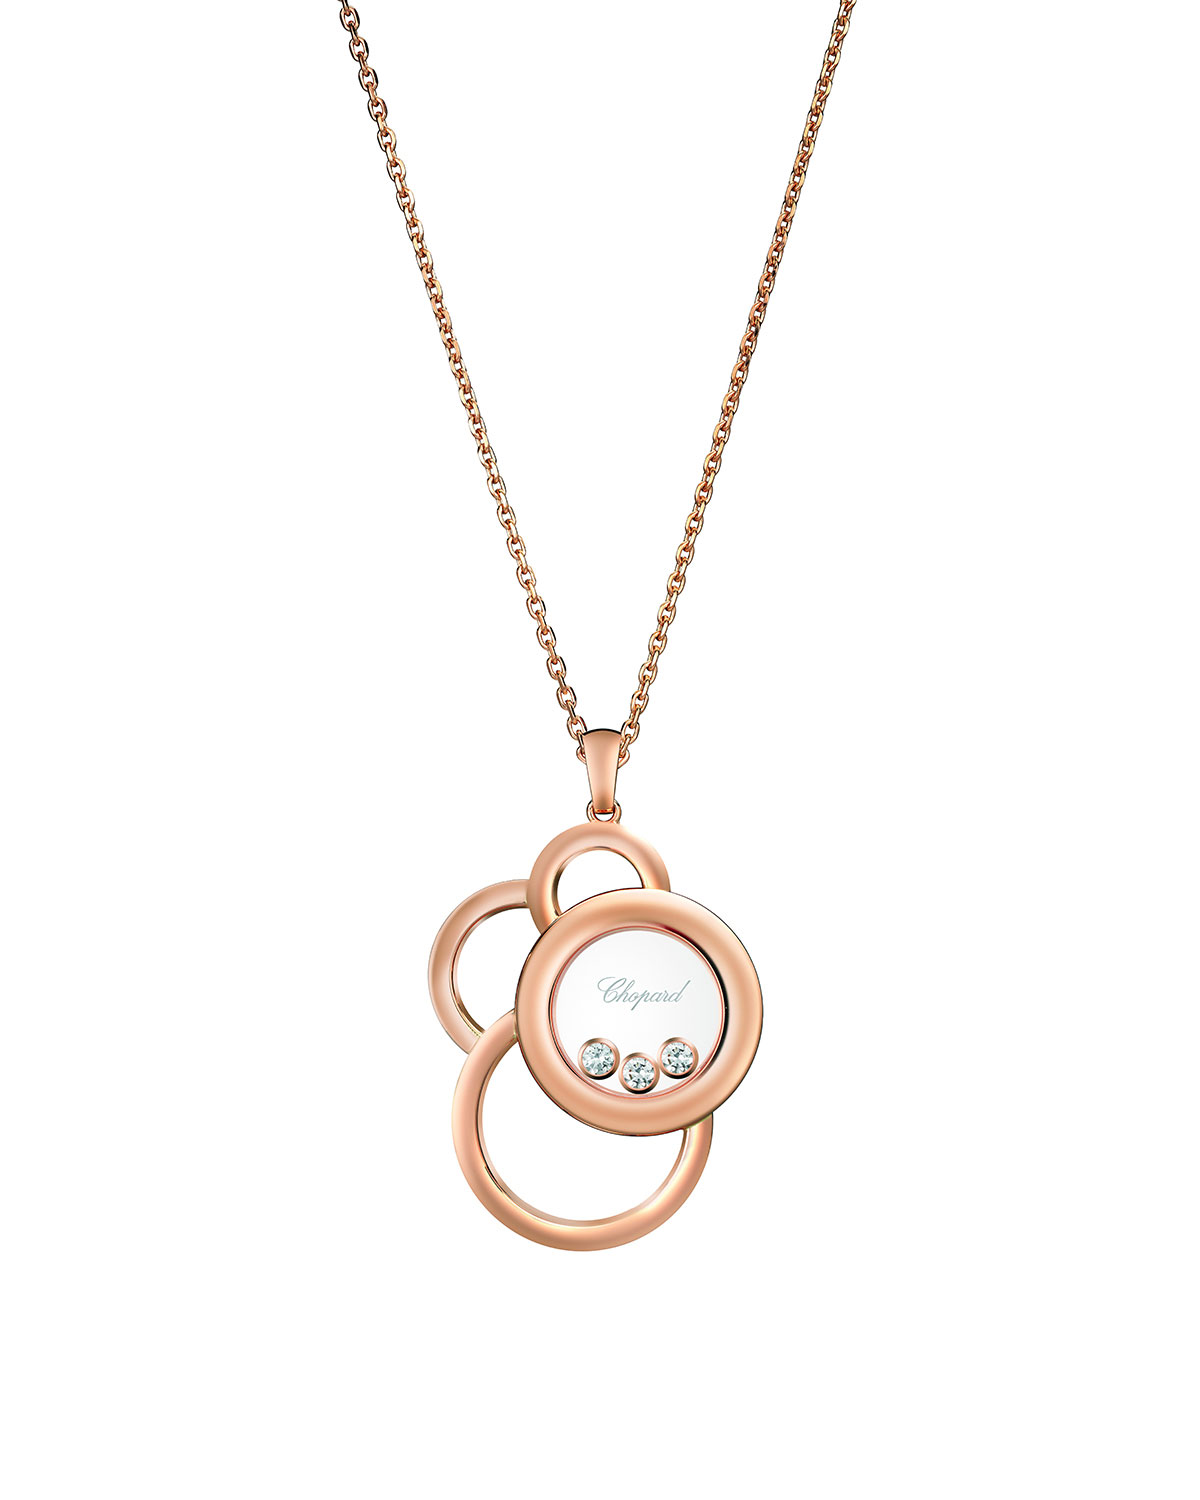 Happy Dream 18k Rose Gold Necklace with Diamonds